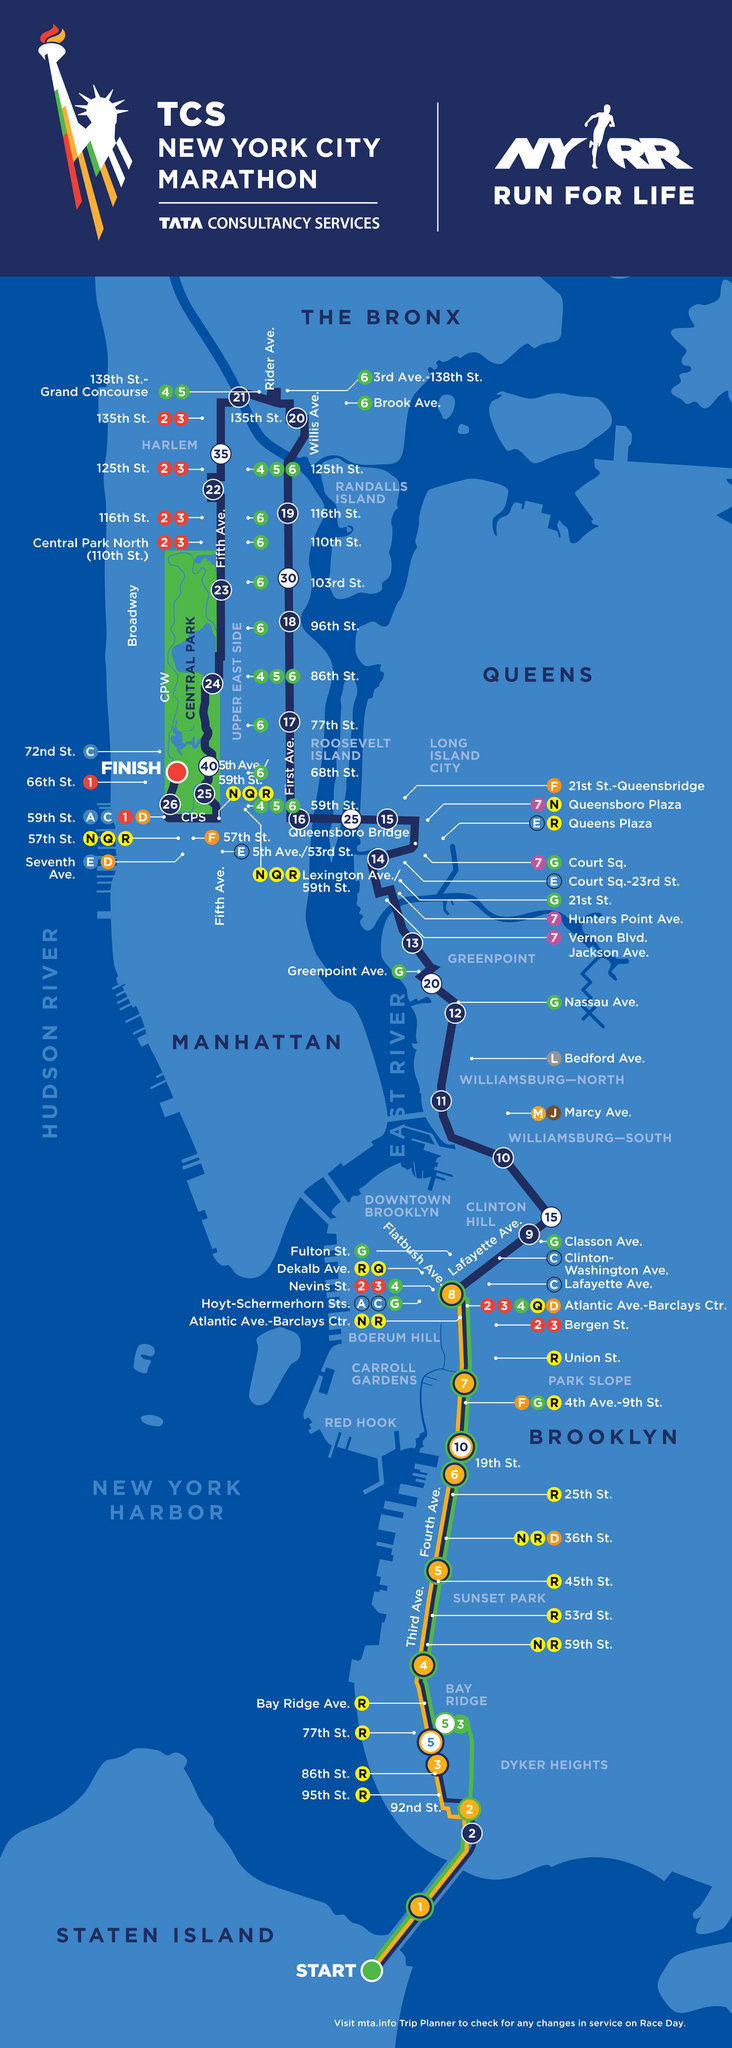 NYC Marathon 2017 route including the course map NYC Marathon 2017 route